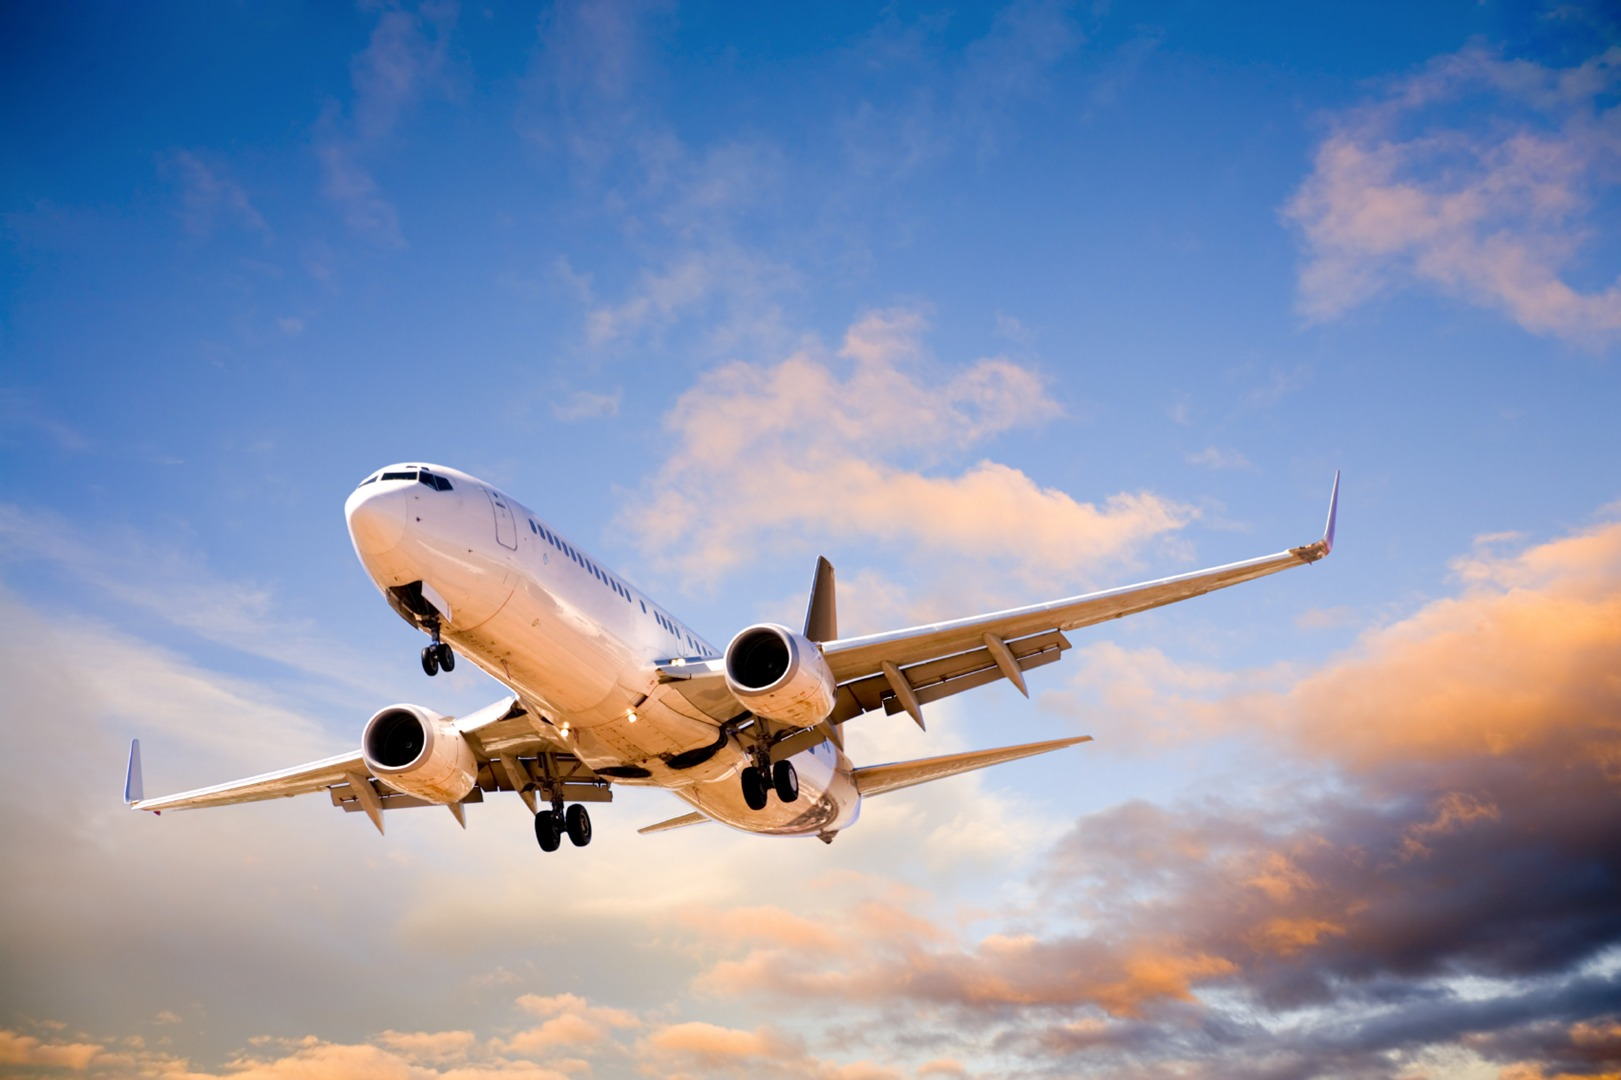 Mexico is among the world's leading airline markets